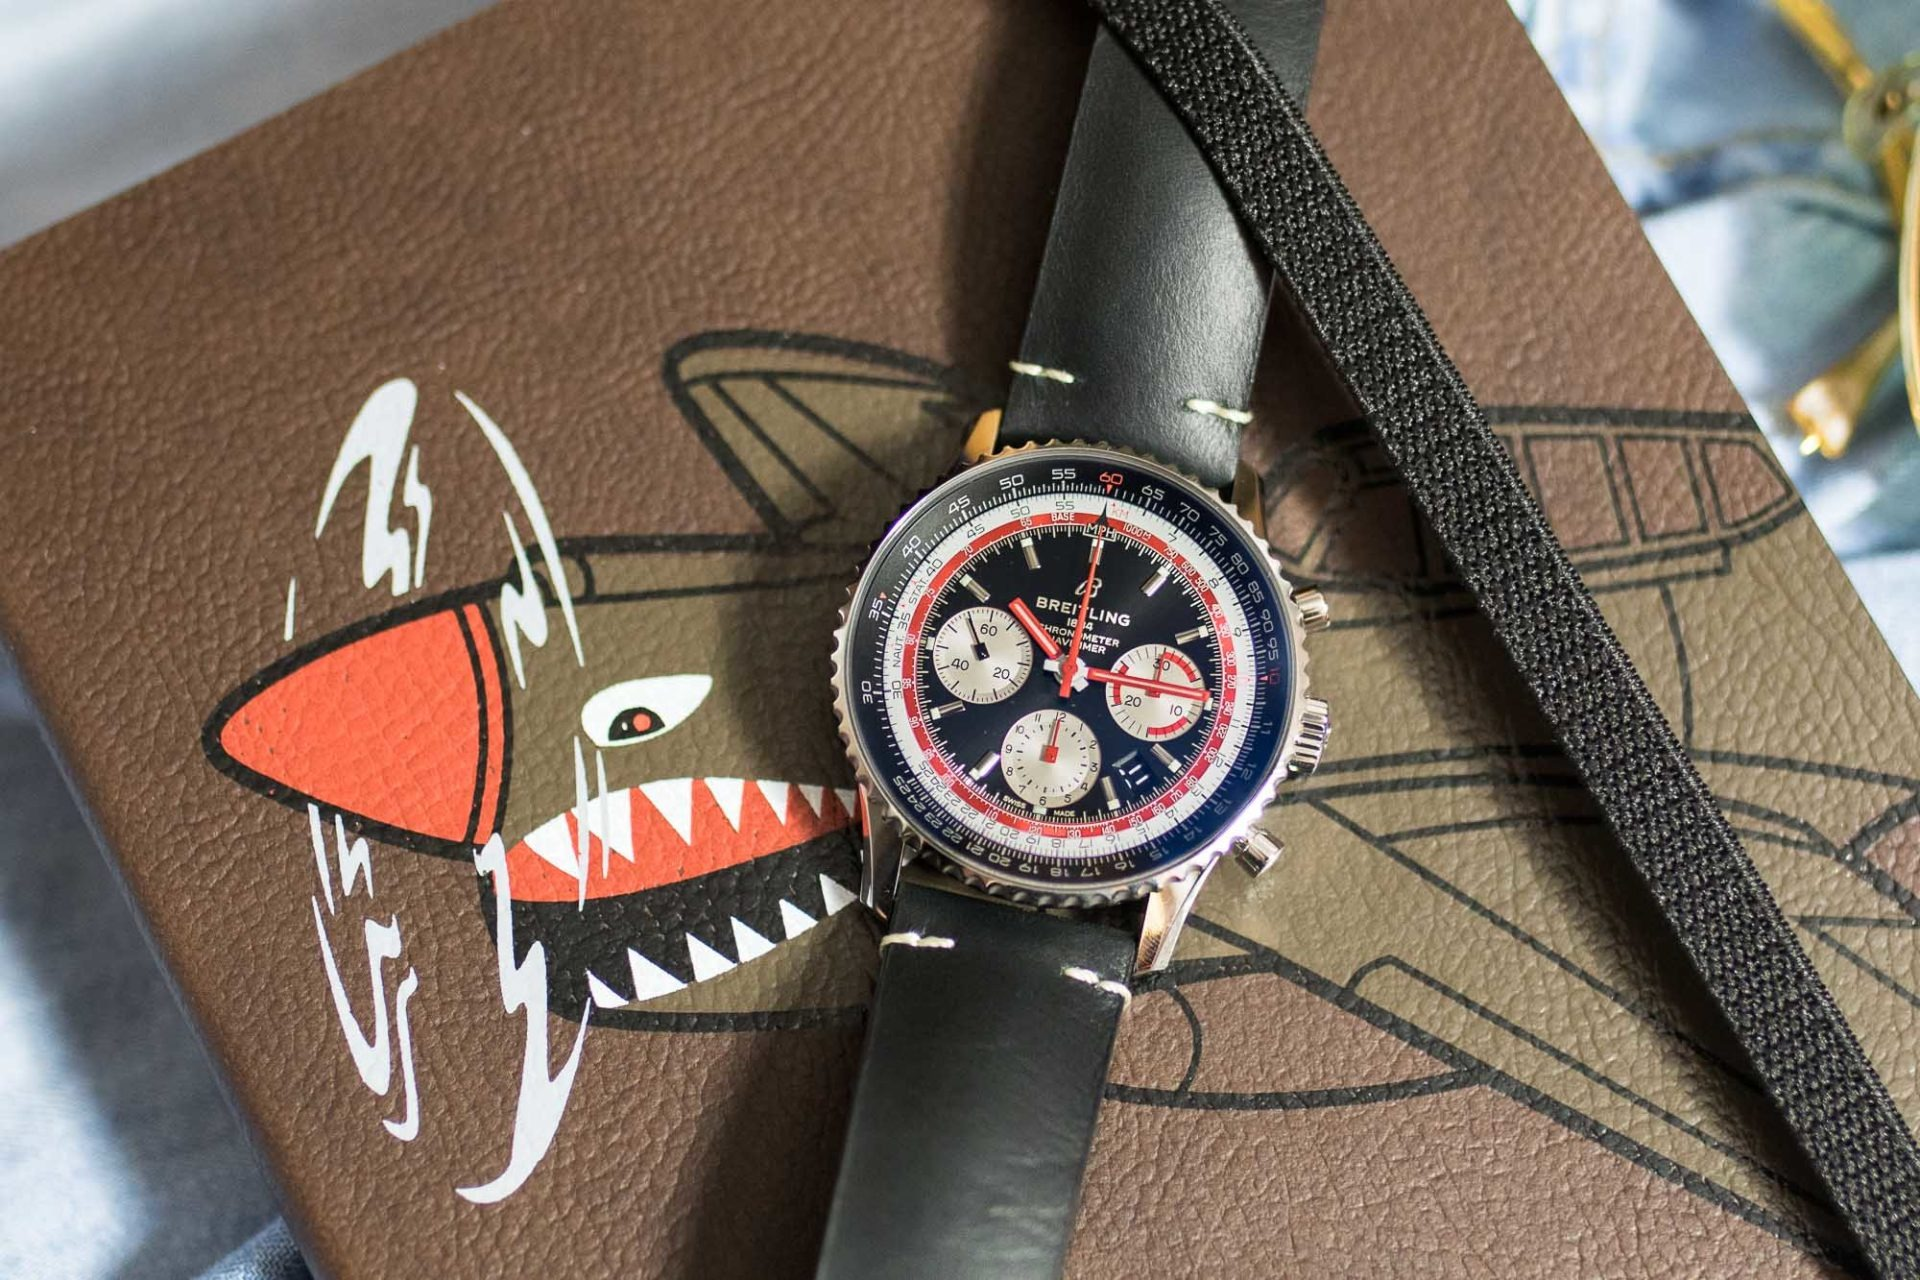 Breitling Navitimer B01 Chronograph 43 Airline Edition Swissair - Baselworld 2019